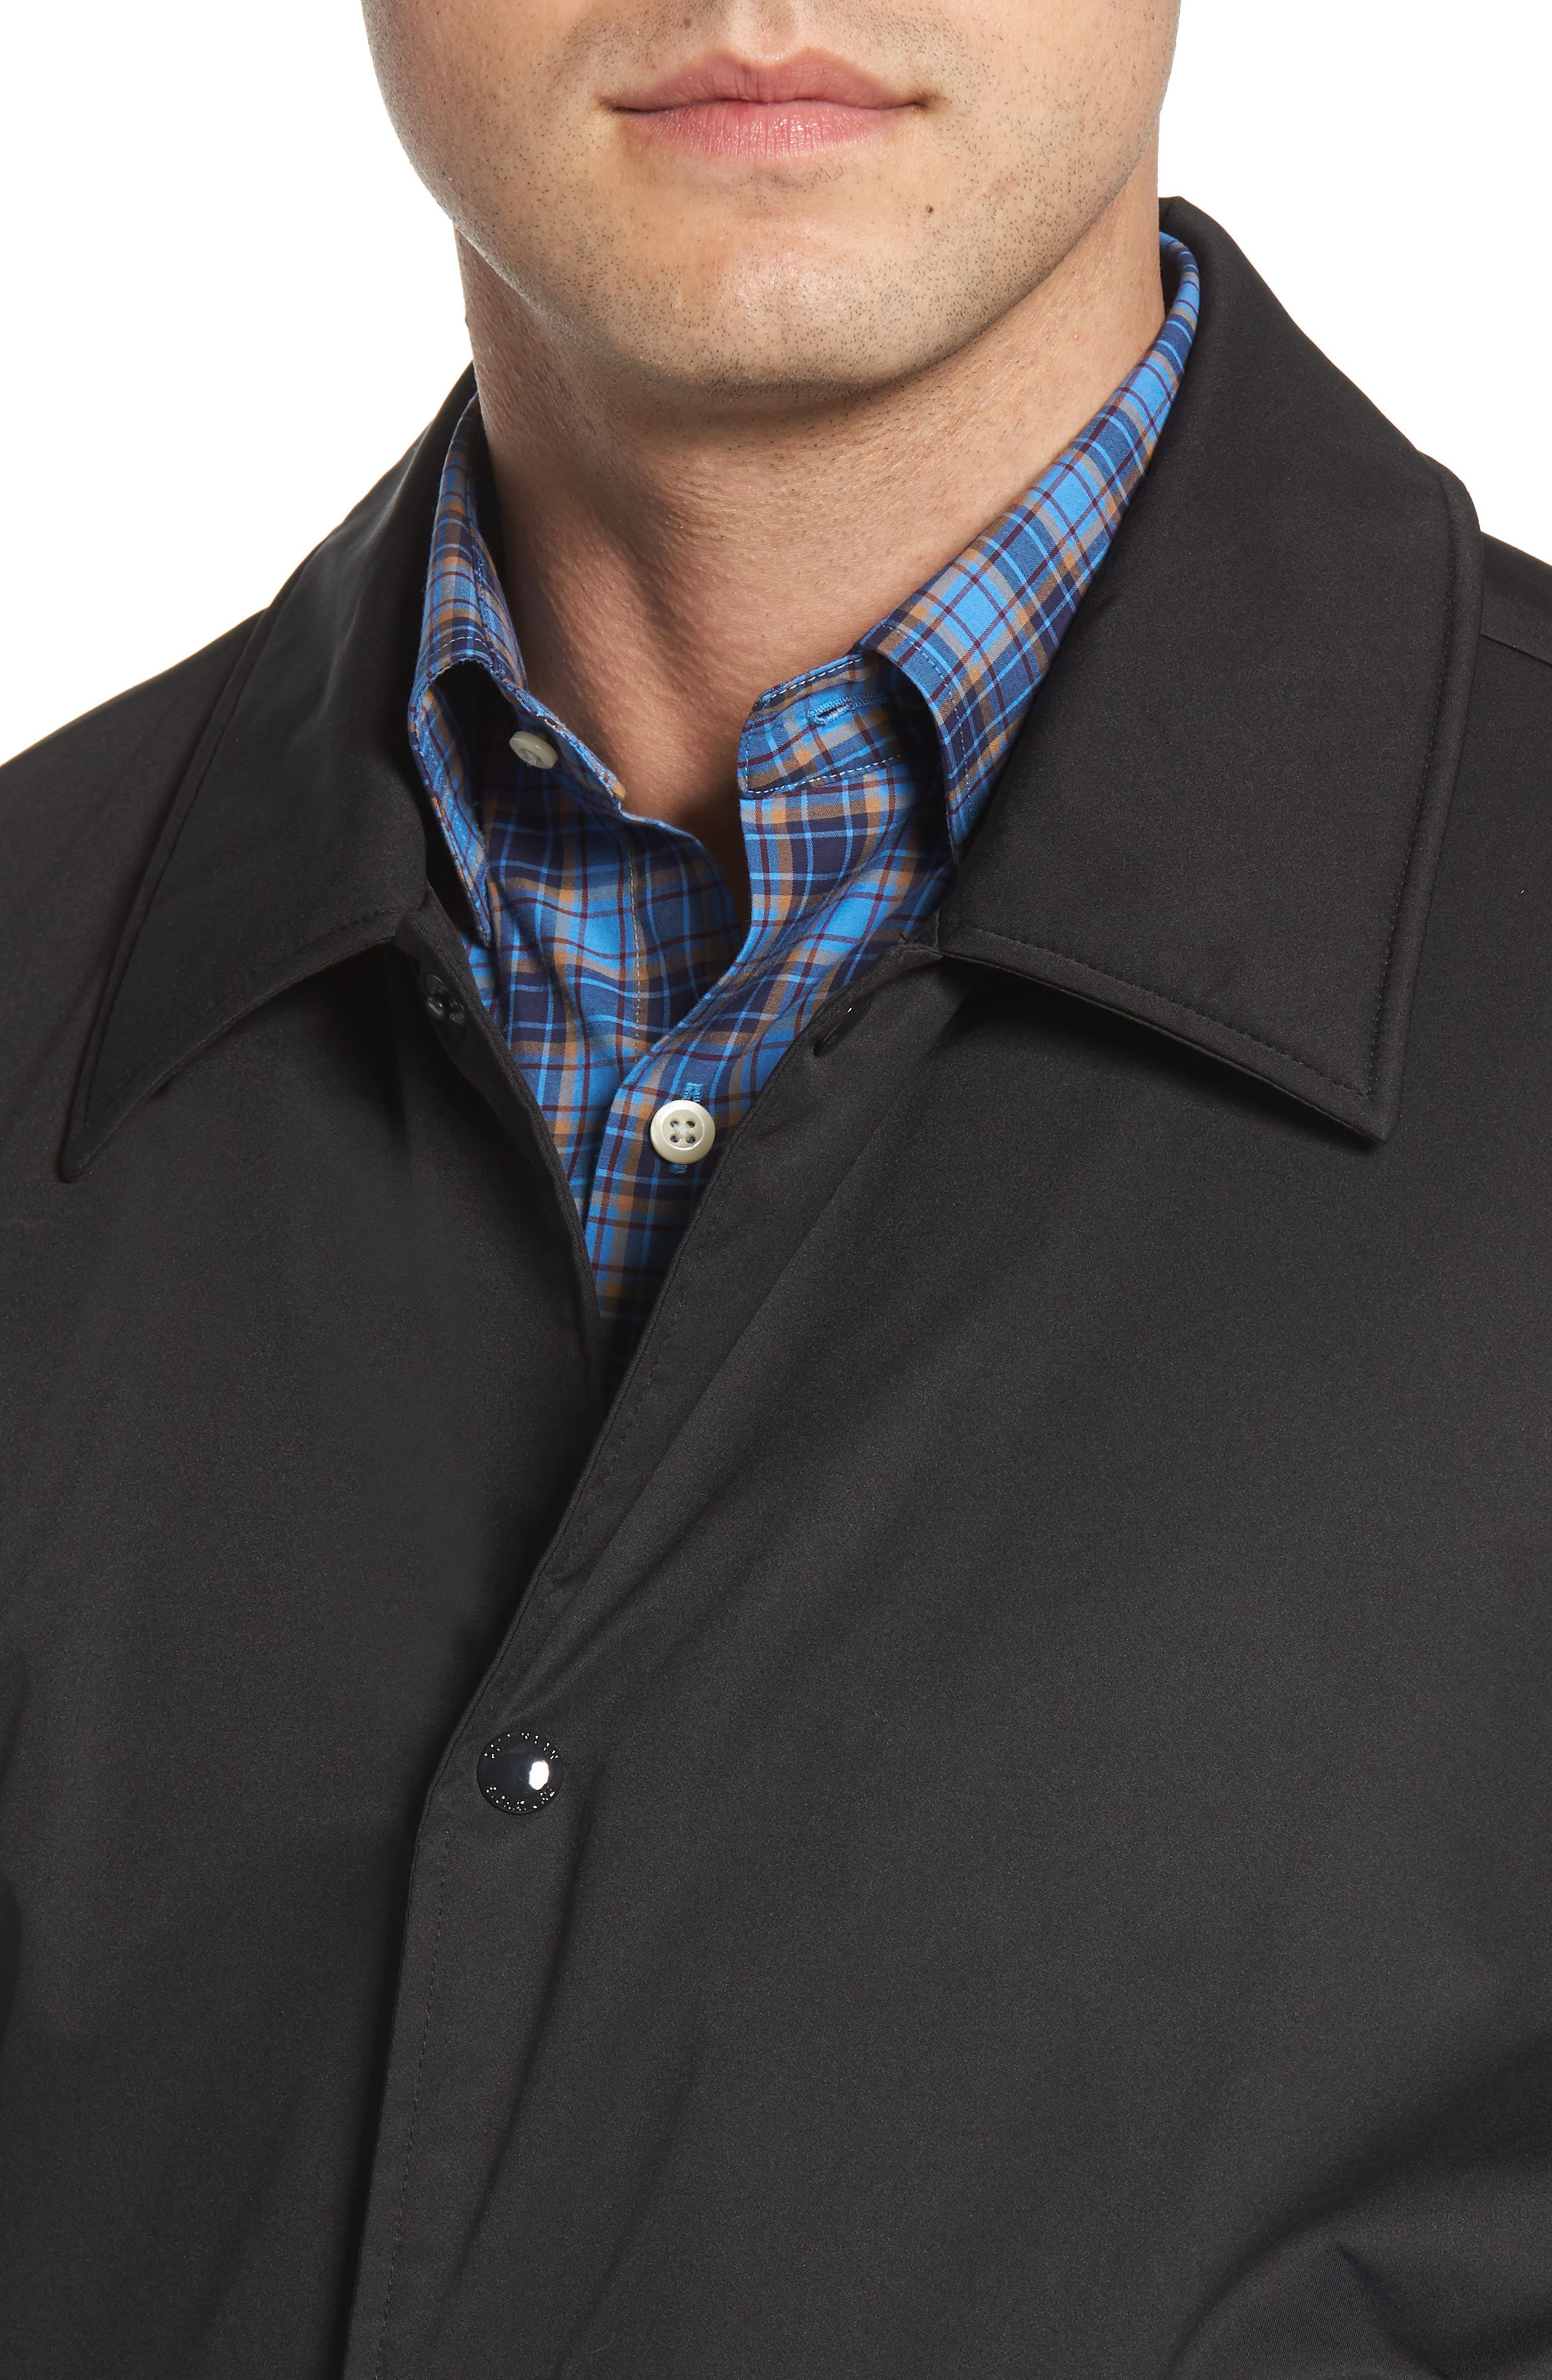 COLE HAAN SIGNATURE,                             Faux Shearling Lined Jacket,                             Alternate thumbnail 4, color,                             001